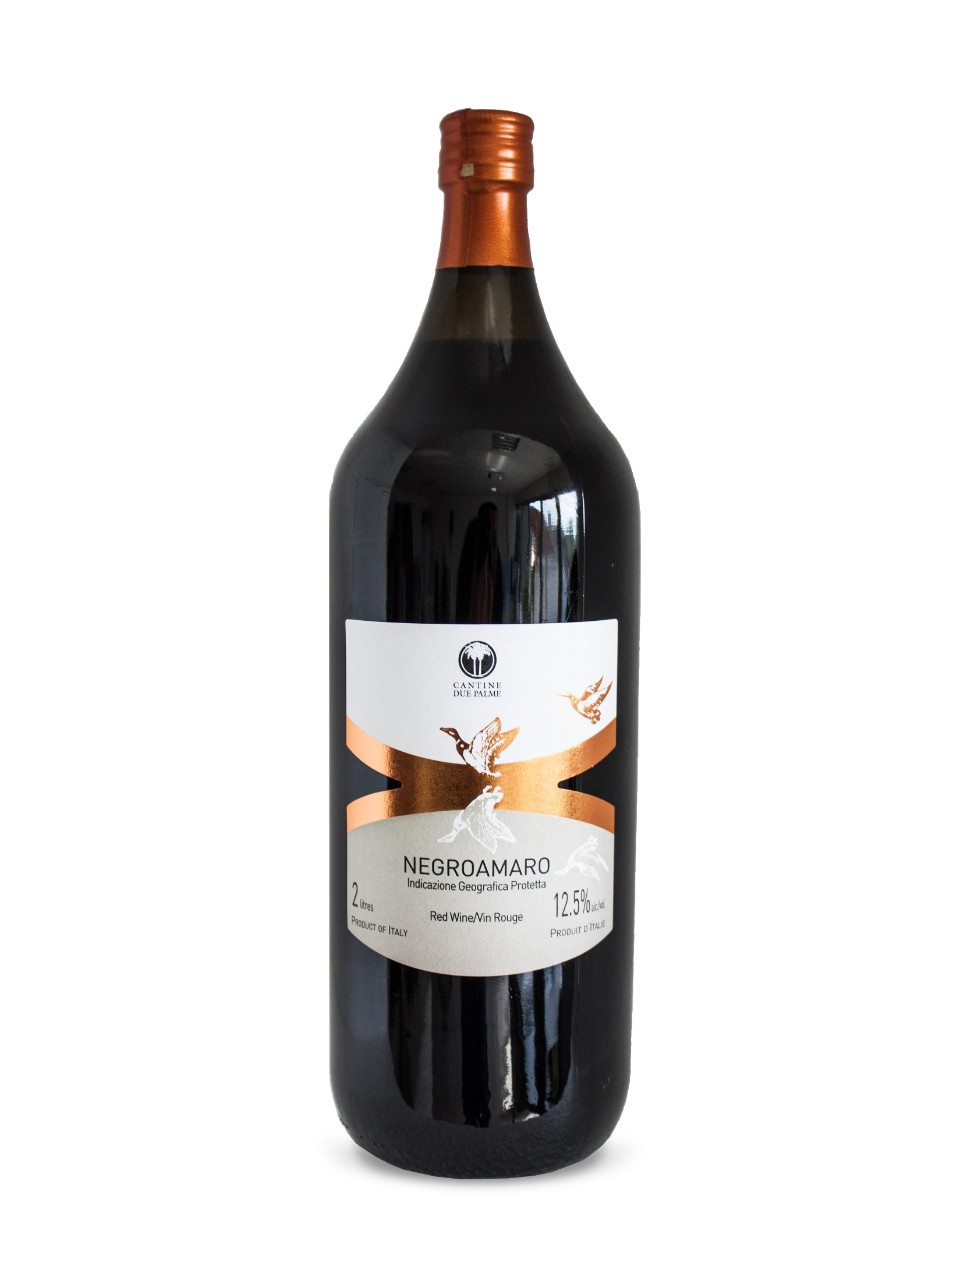 Image for Cantine Due Palme Canonico Negroamaro Salento IGP from LCBO